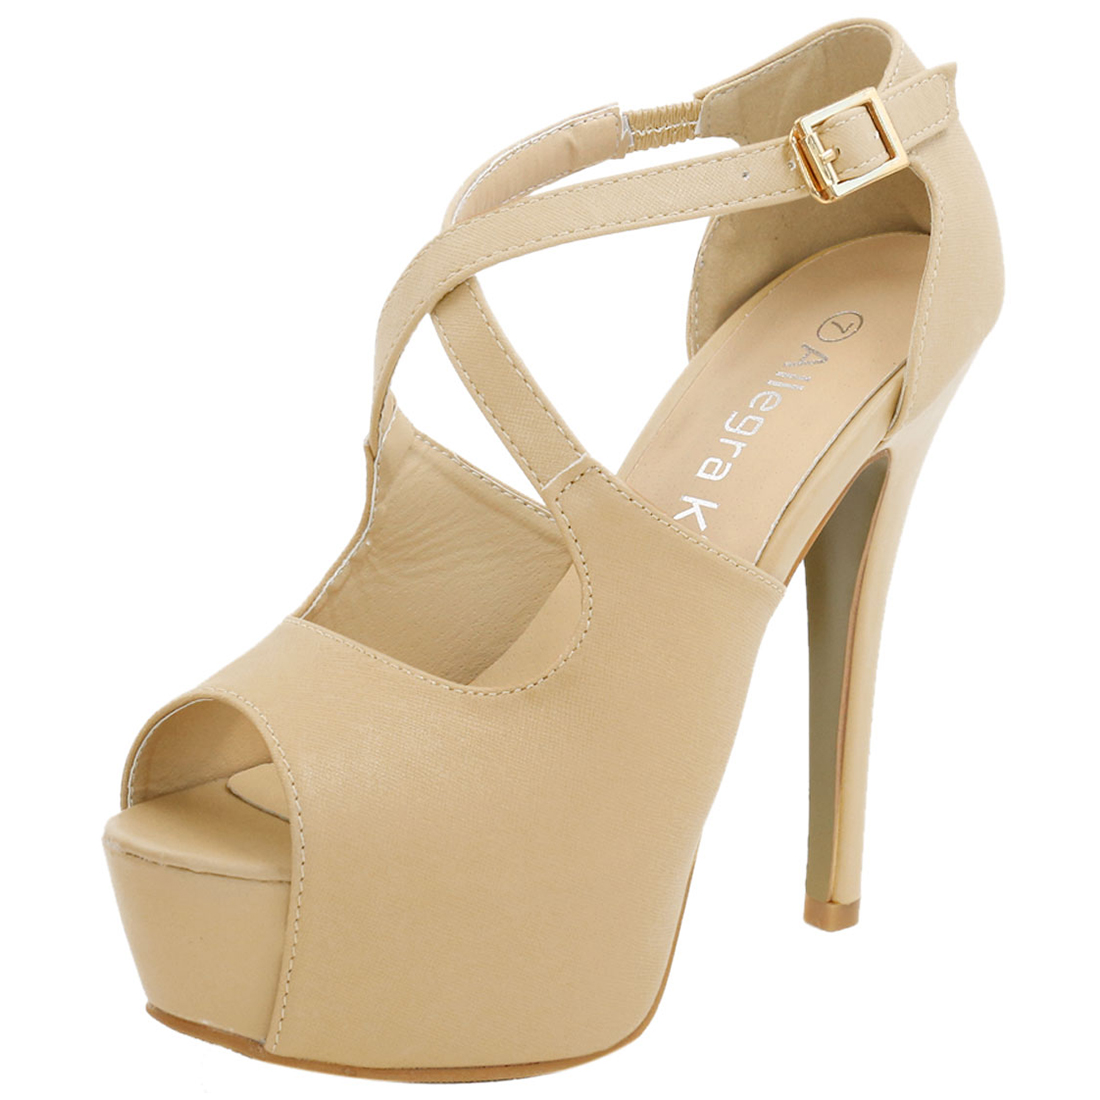 Woman Peep Toe High Heel Crisscross Straps Platform Sandals Beige US 8.5